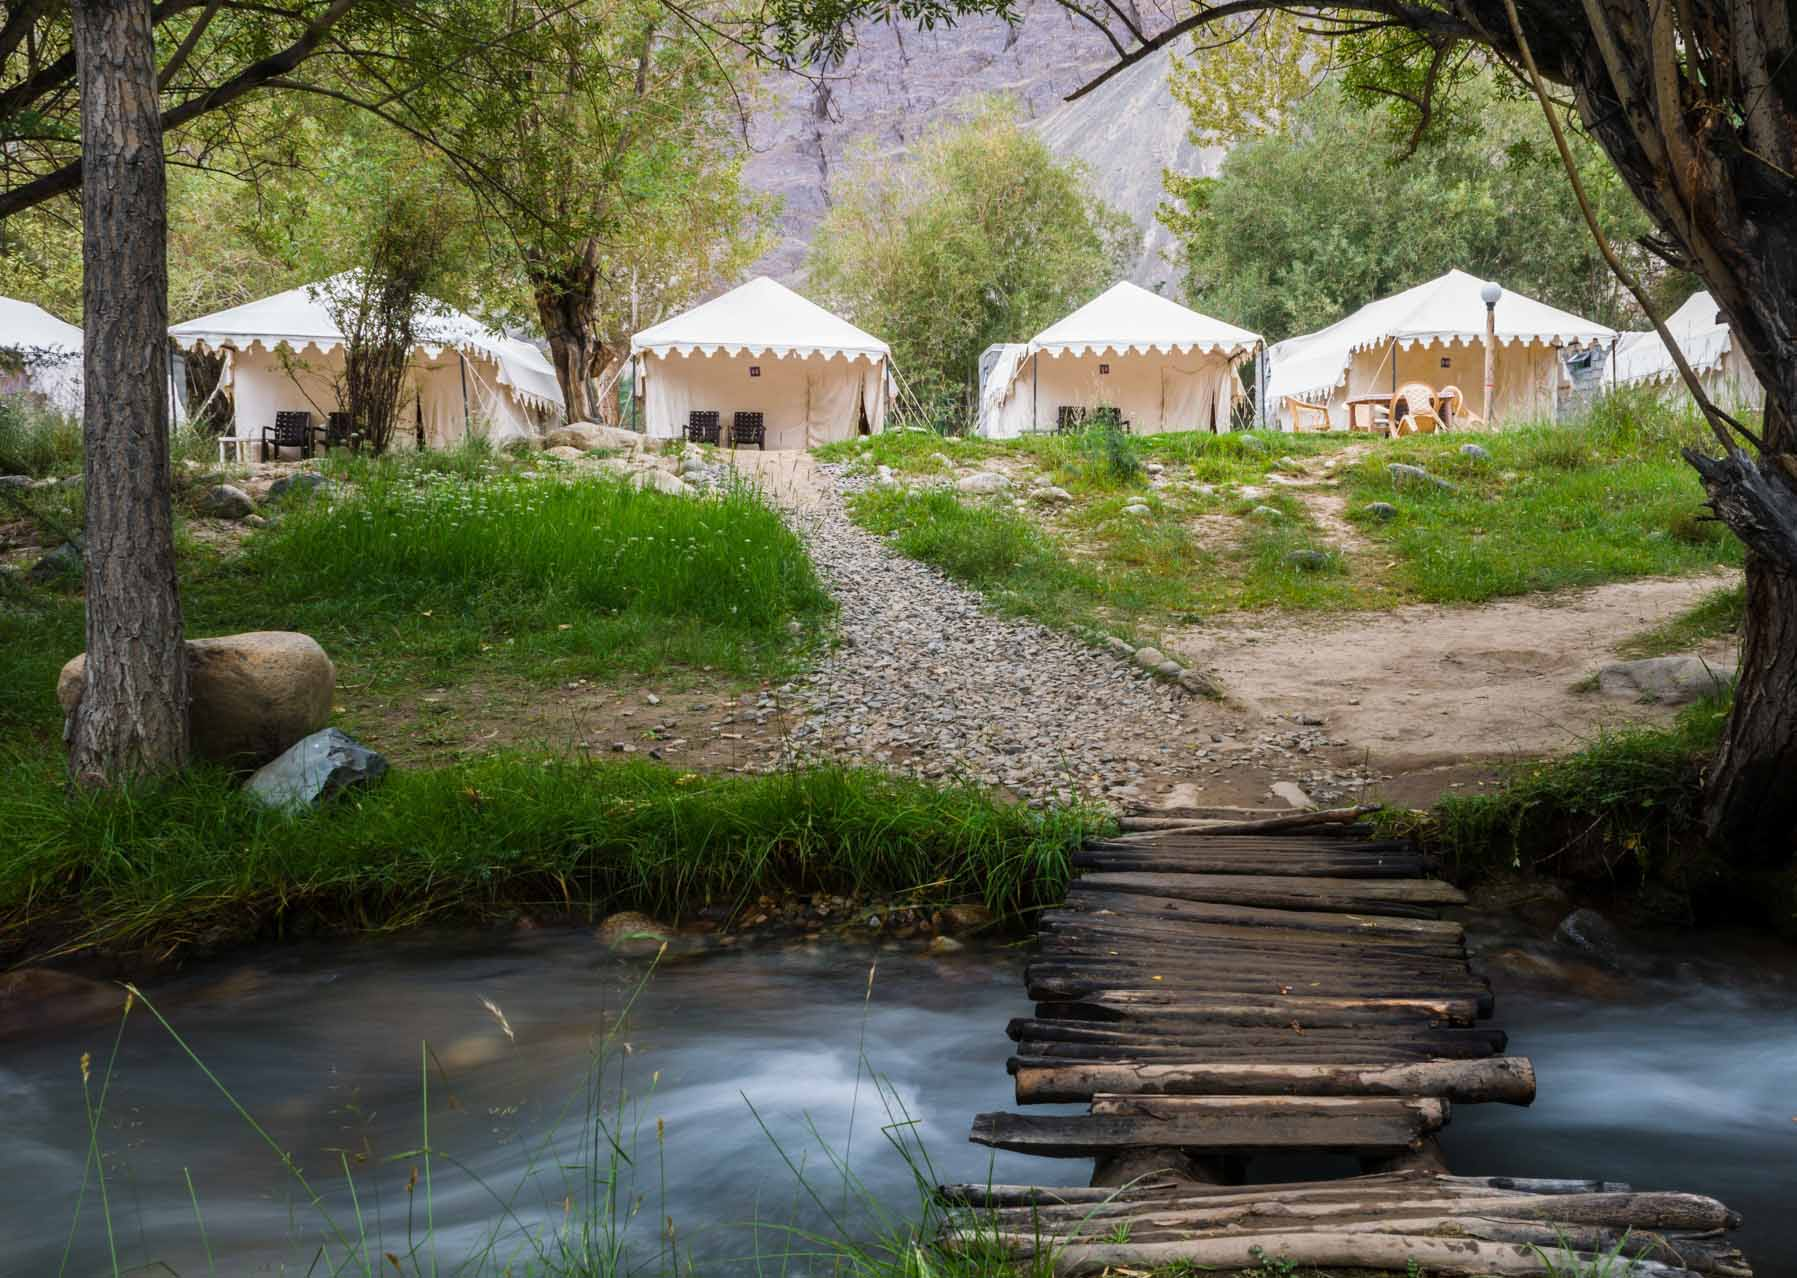 Royal Deluxe Camp